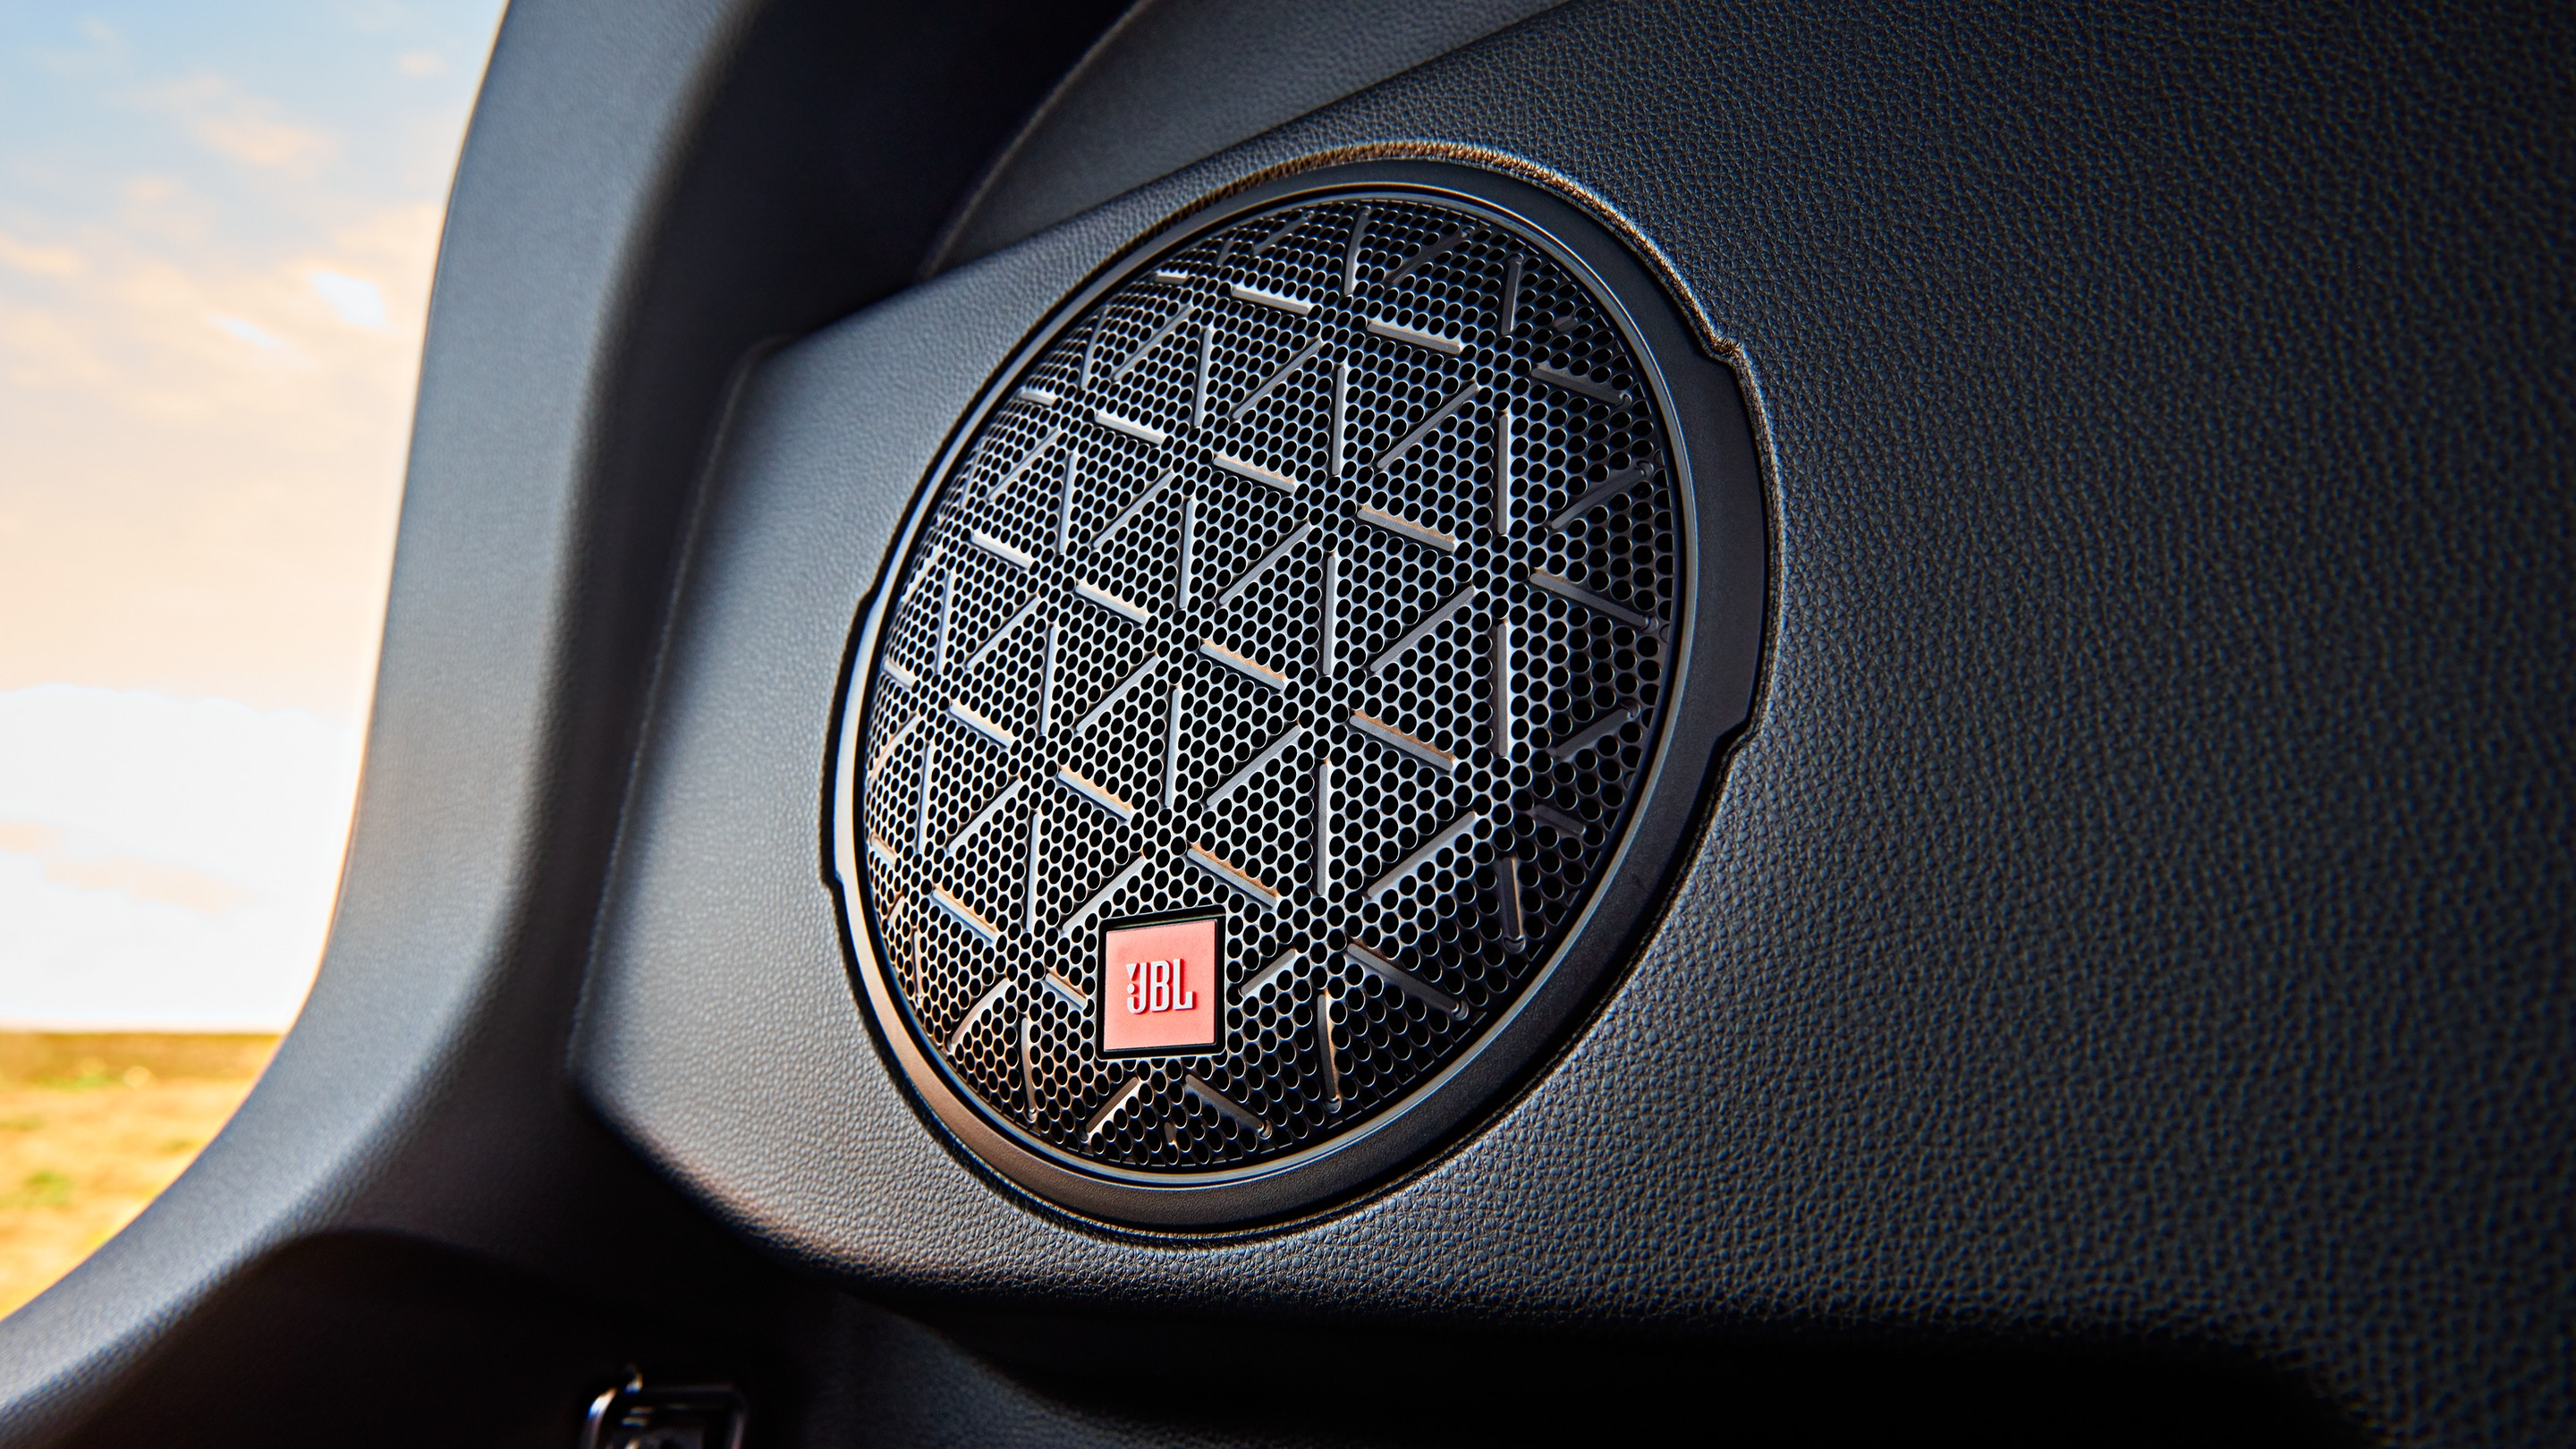 The JBL Speakers of the RAV4